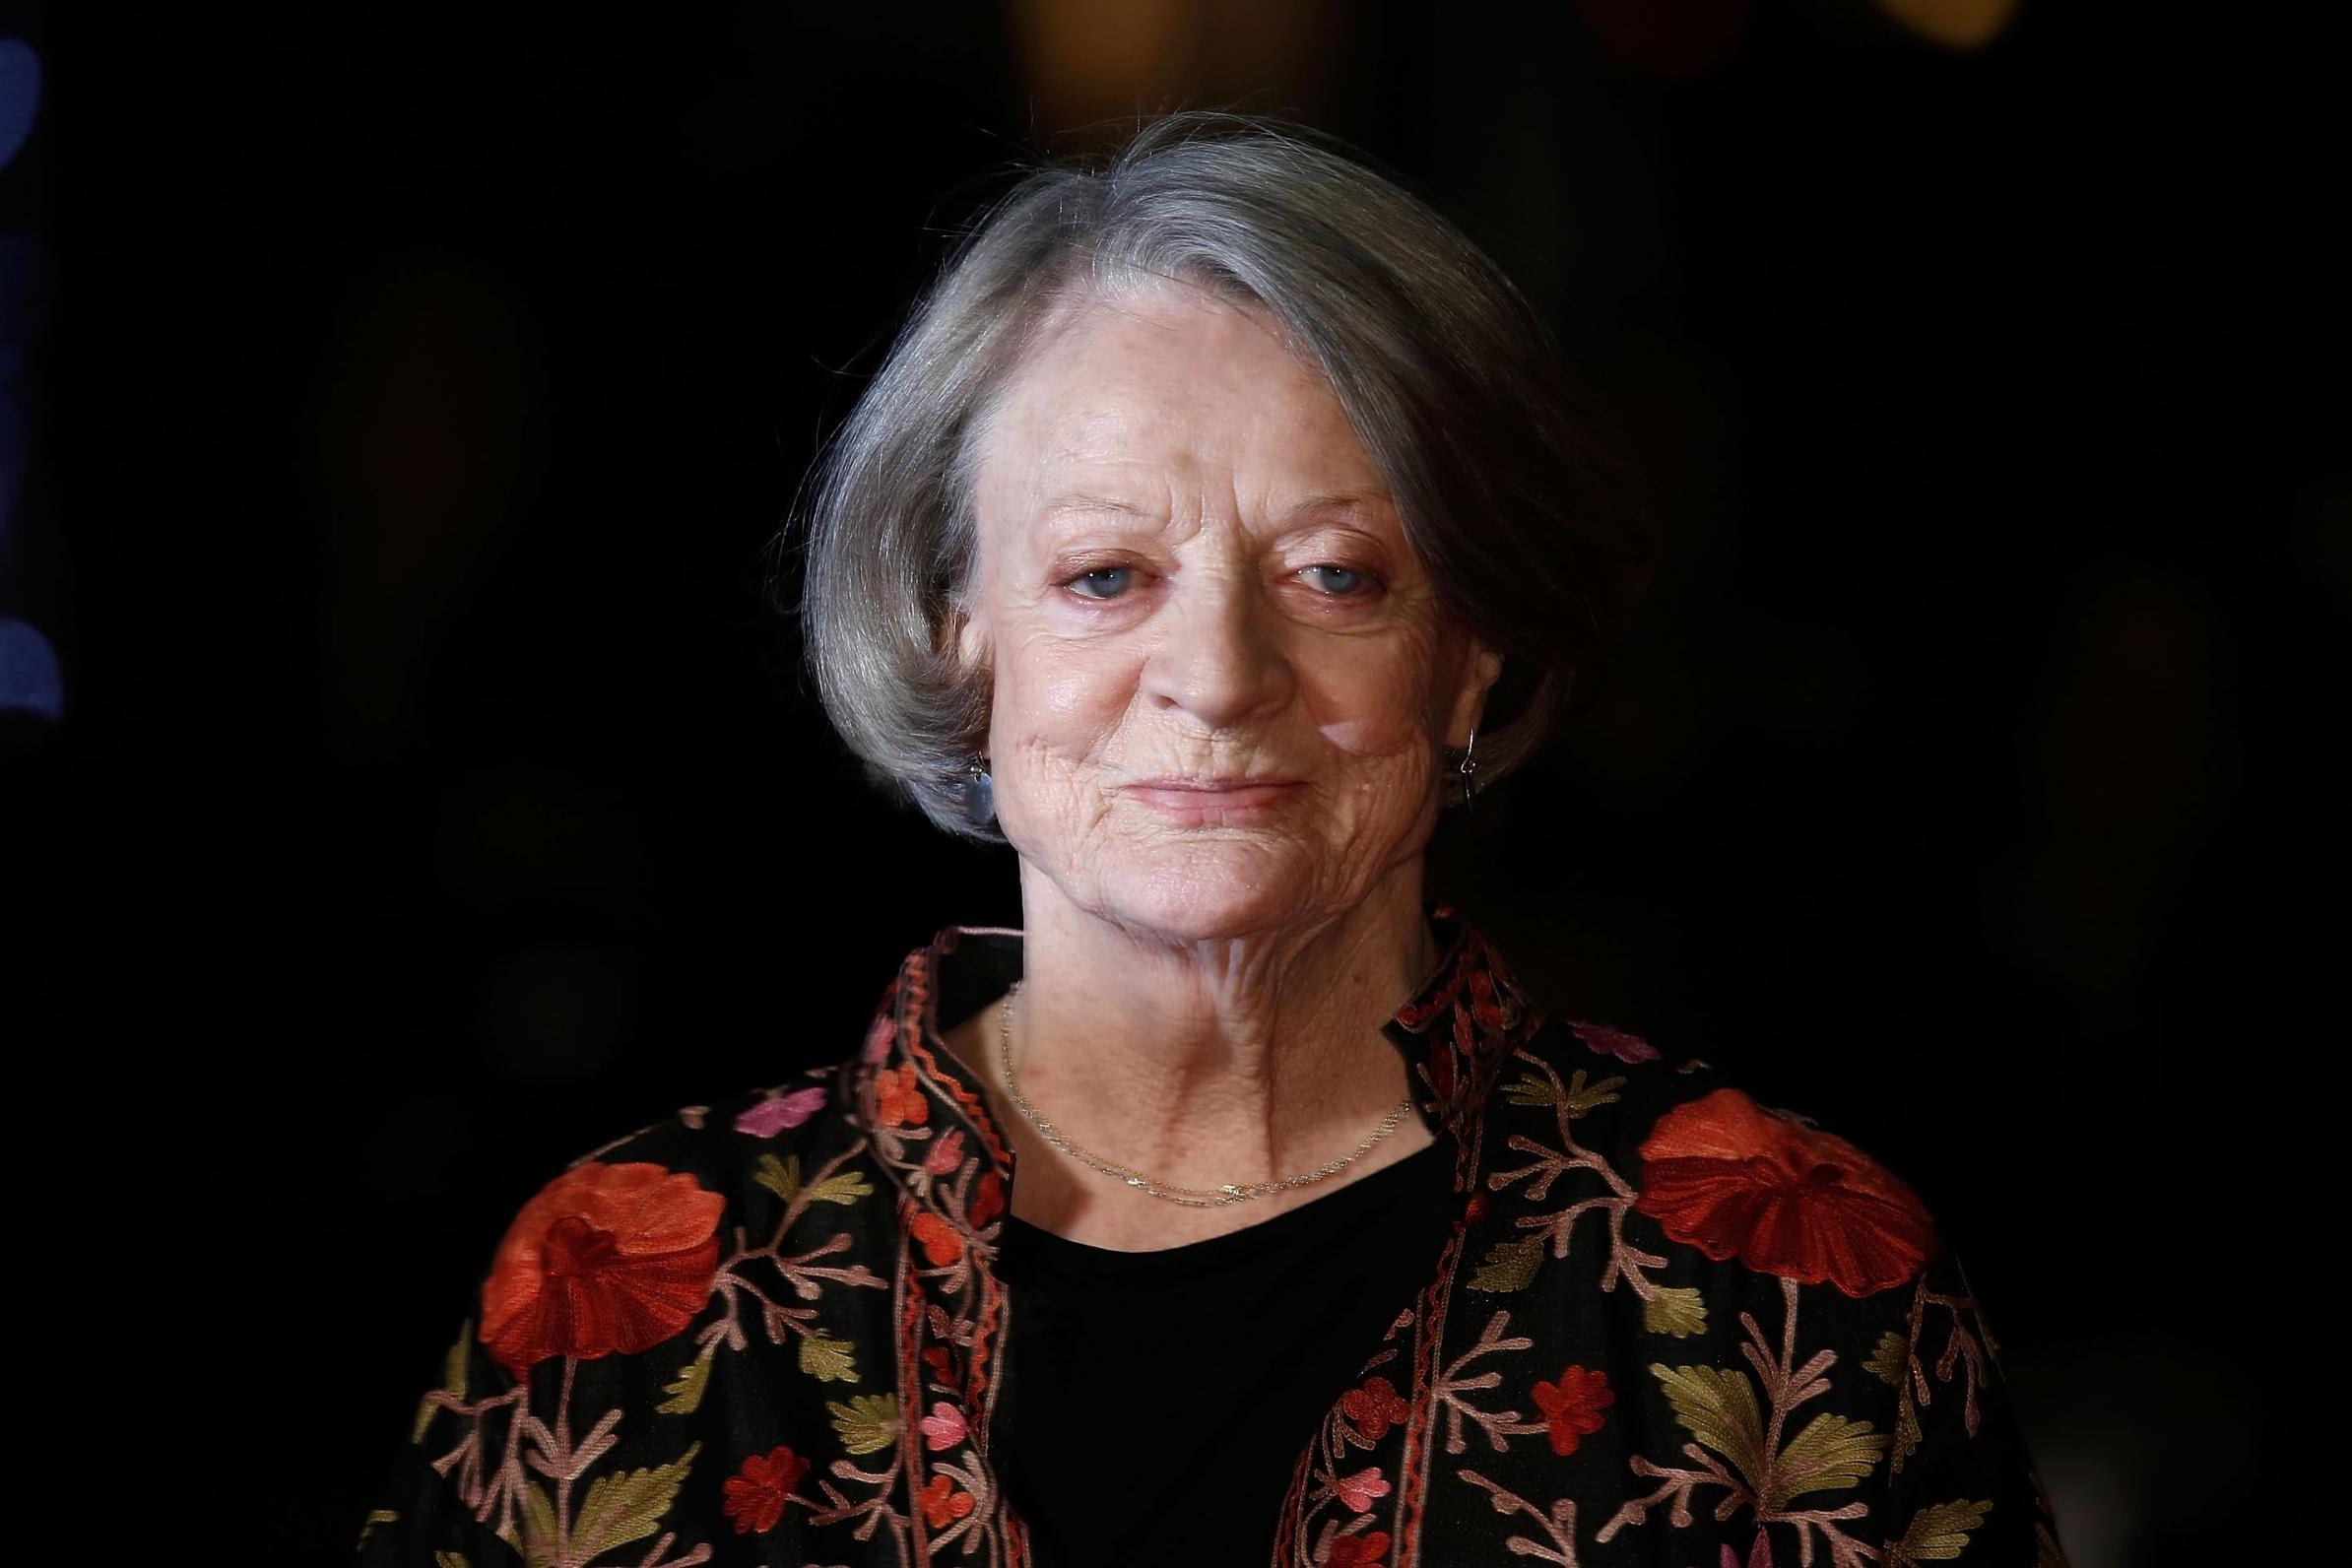 Maggie Smith: A career of outstanding performances, from Othello to Downton Abbey